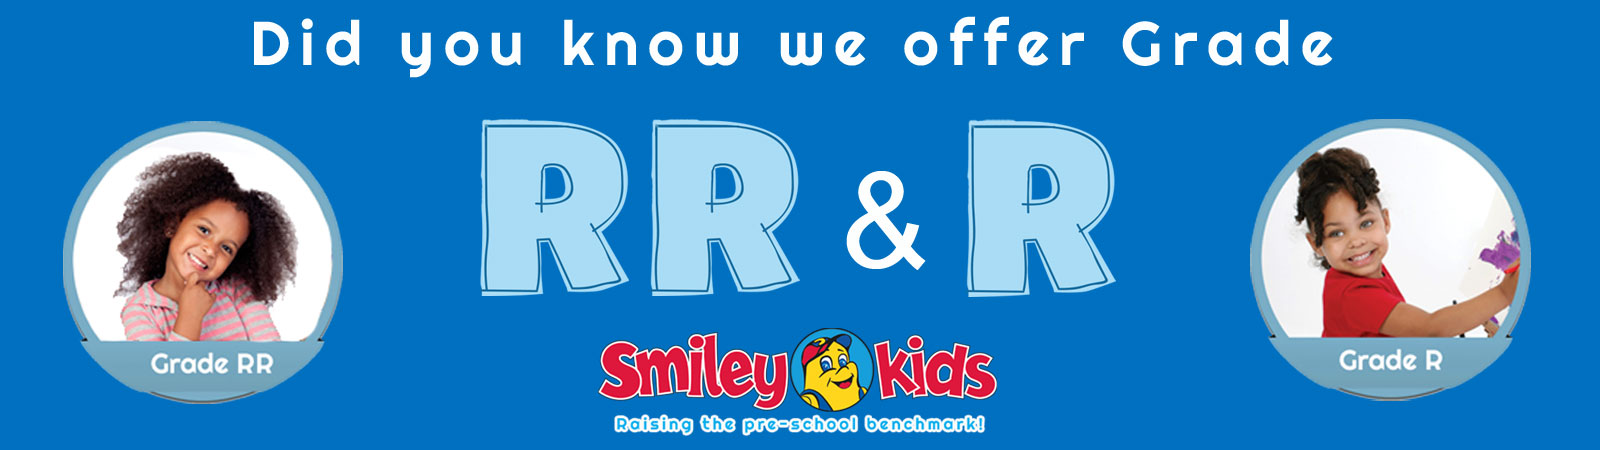 Welcome to https://www.smileykids.co.za/img_library/8253GradeR_RR_2.jpg